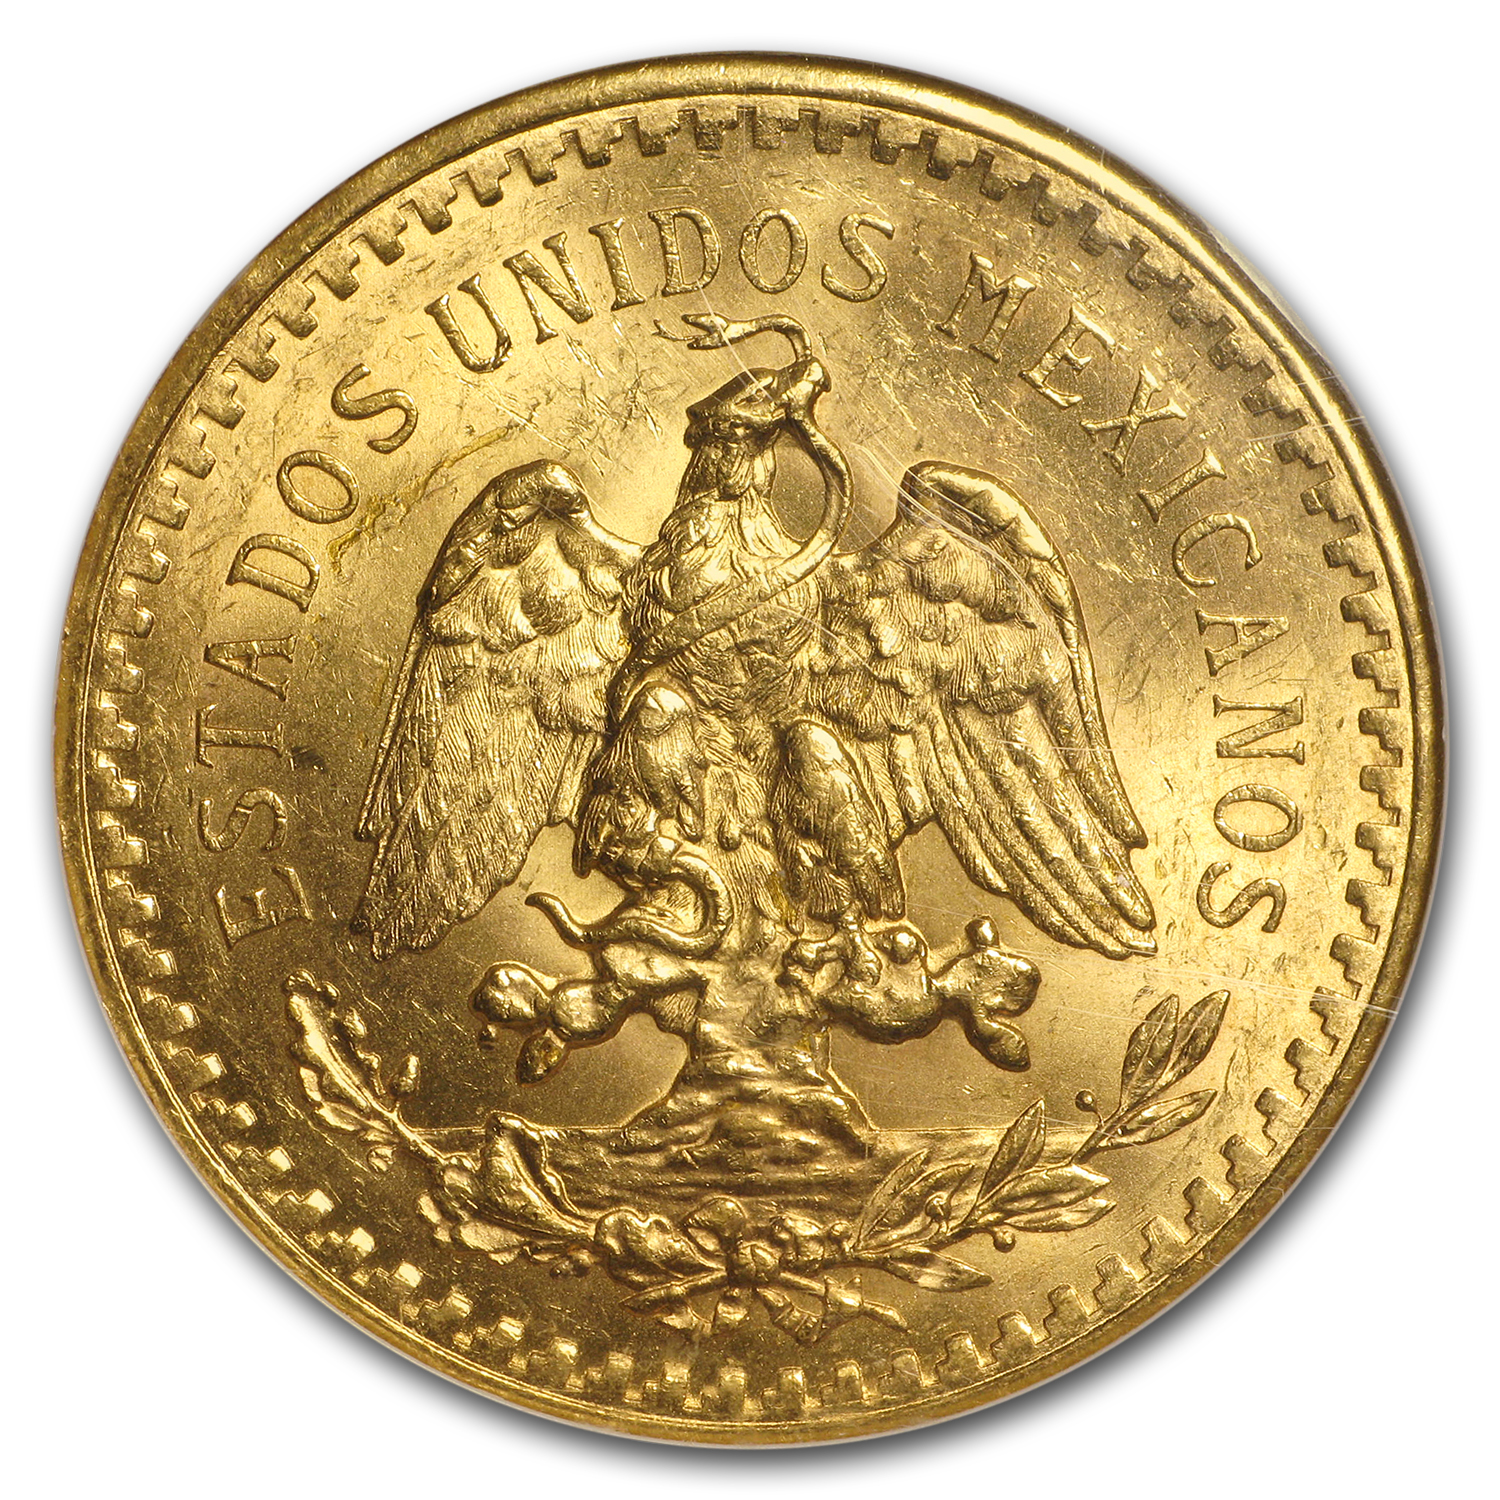 Mexico 1921 50 Pesos Gold Coin - MS-63 NGC